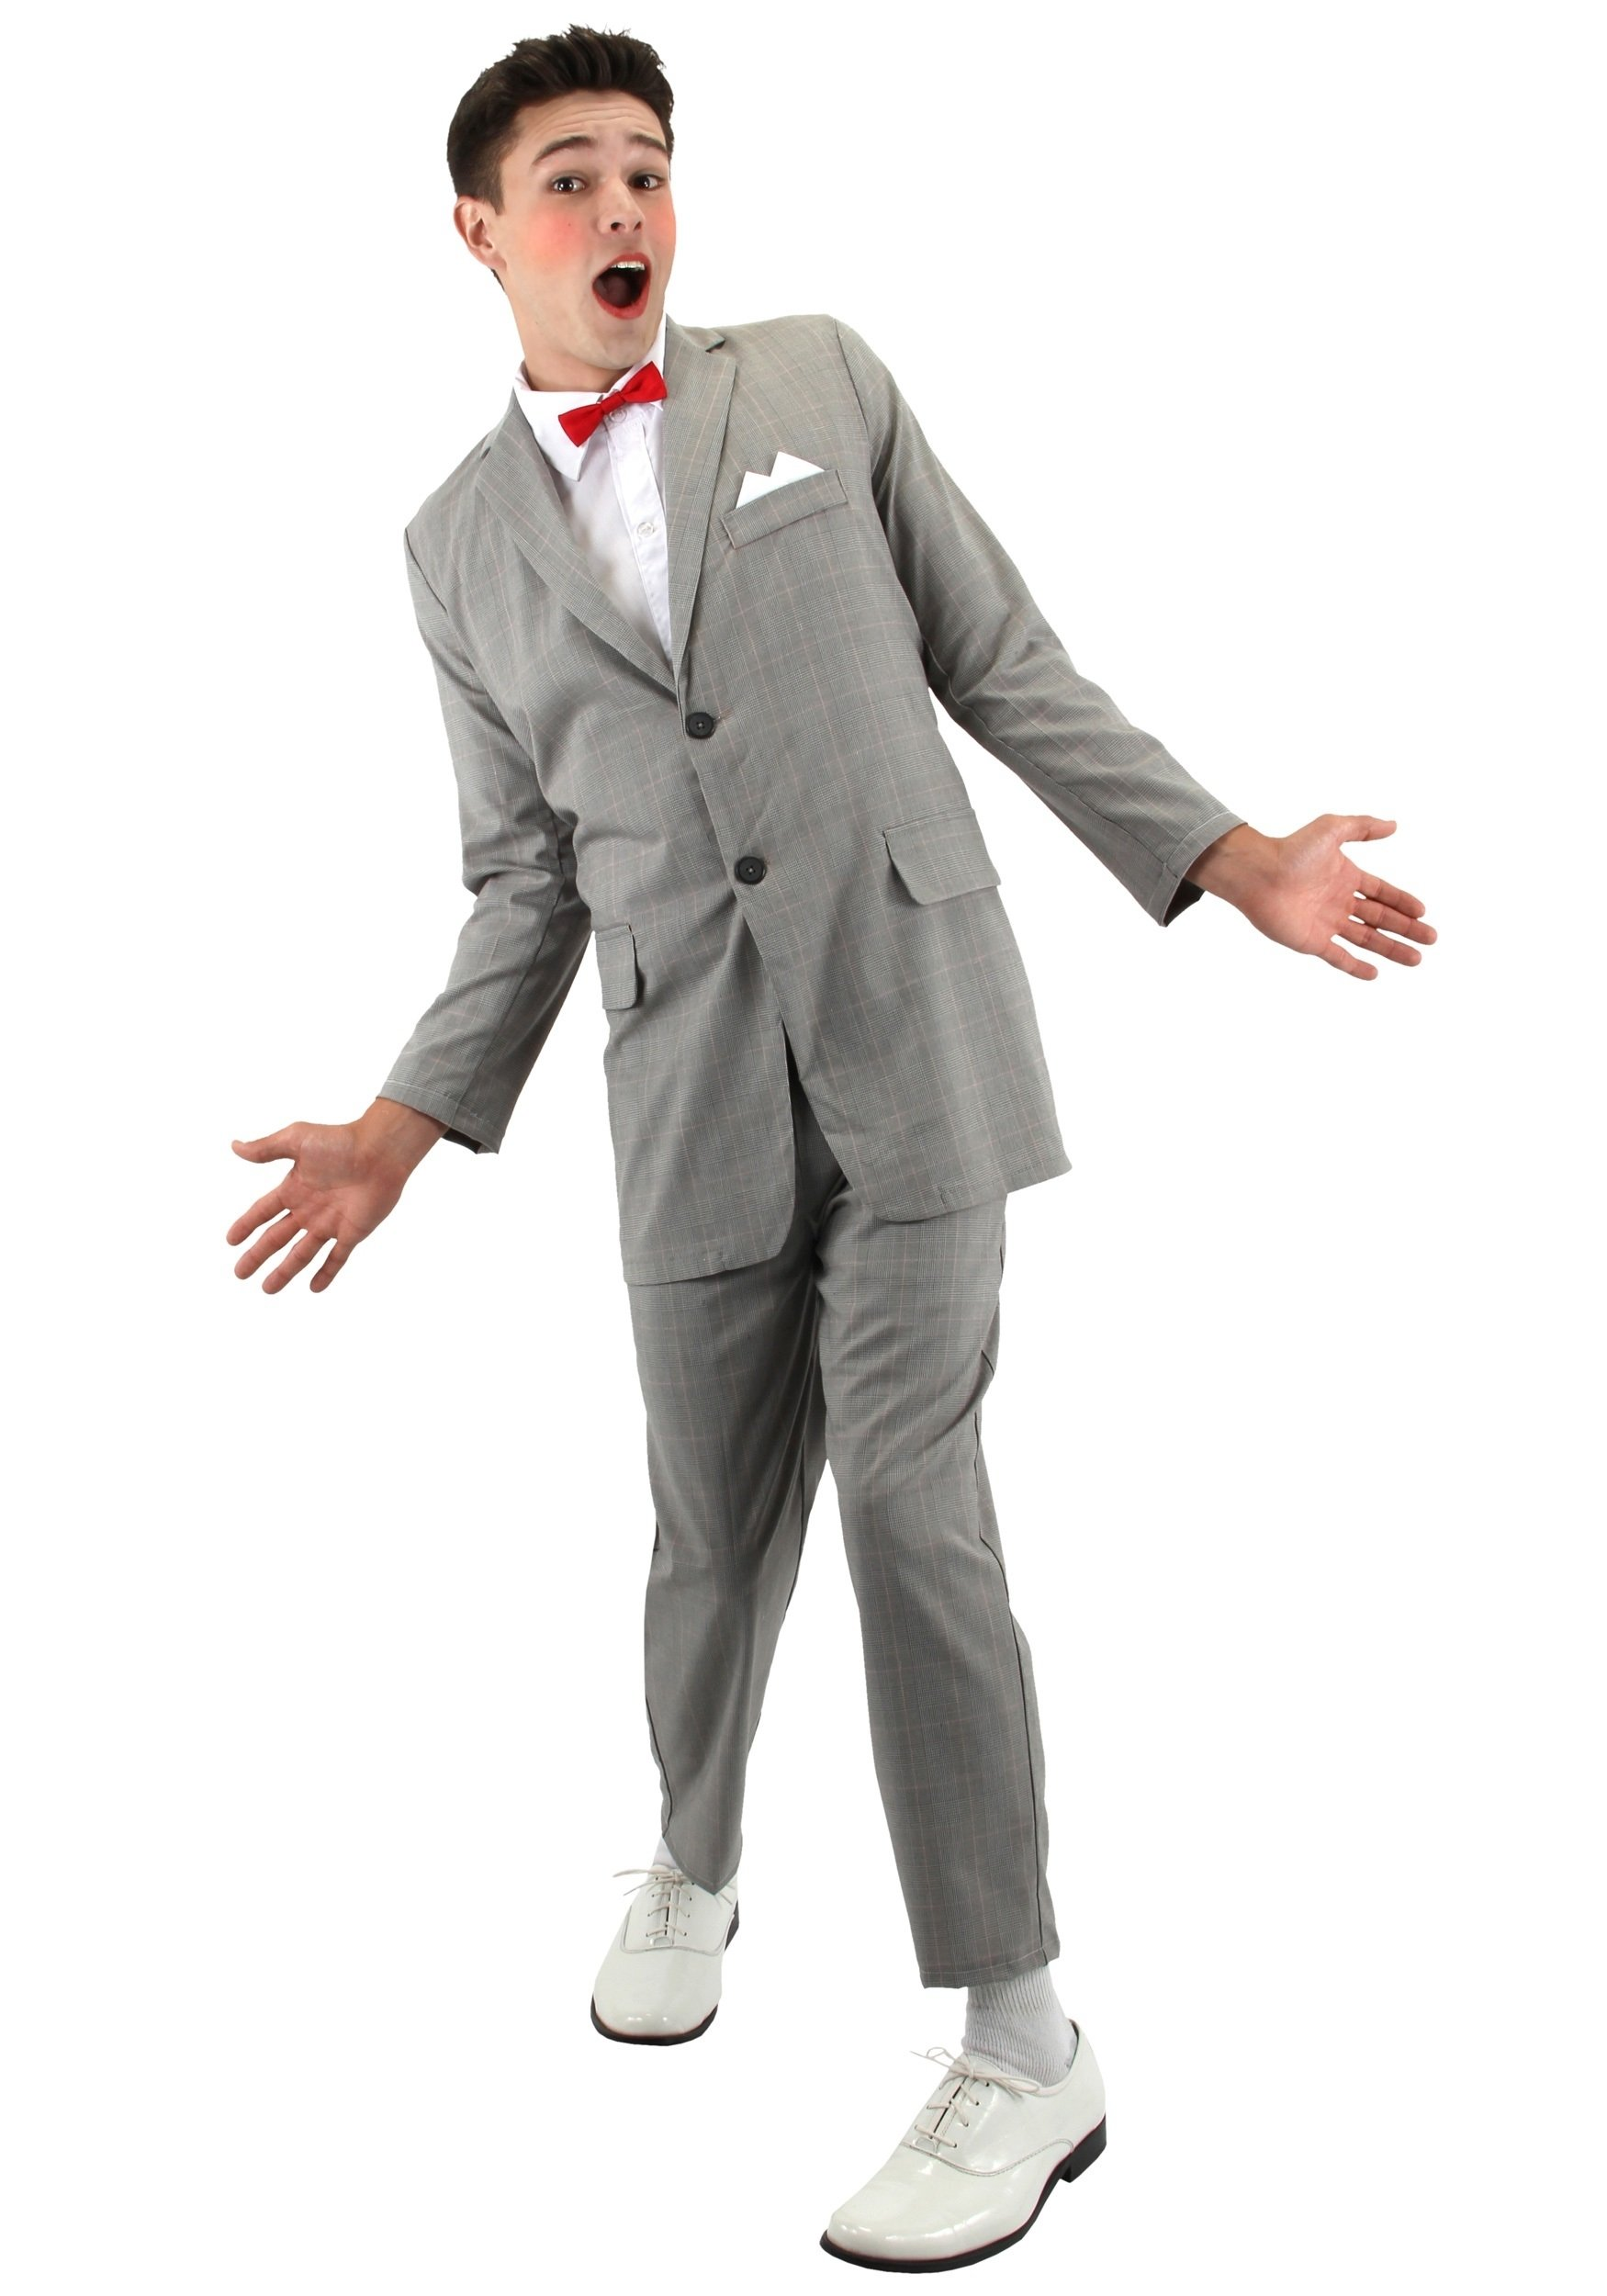 10 Elegant 80S Costume Ideas For Men pee wee adult costume funny mens pee wee herman  sc 1 st  Unique Ideas 2018 & 10 Elegant 80S Costume Ideas For Men